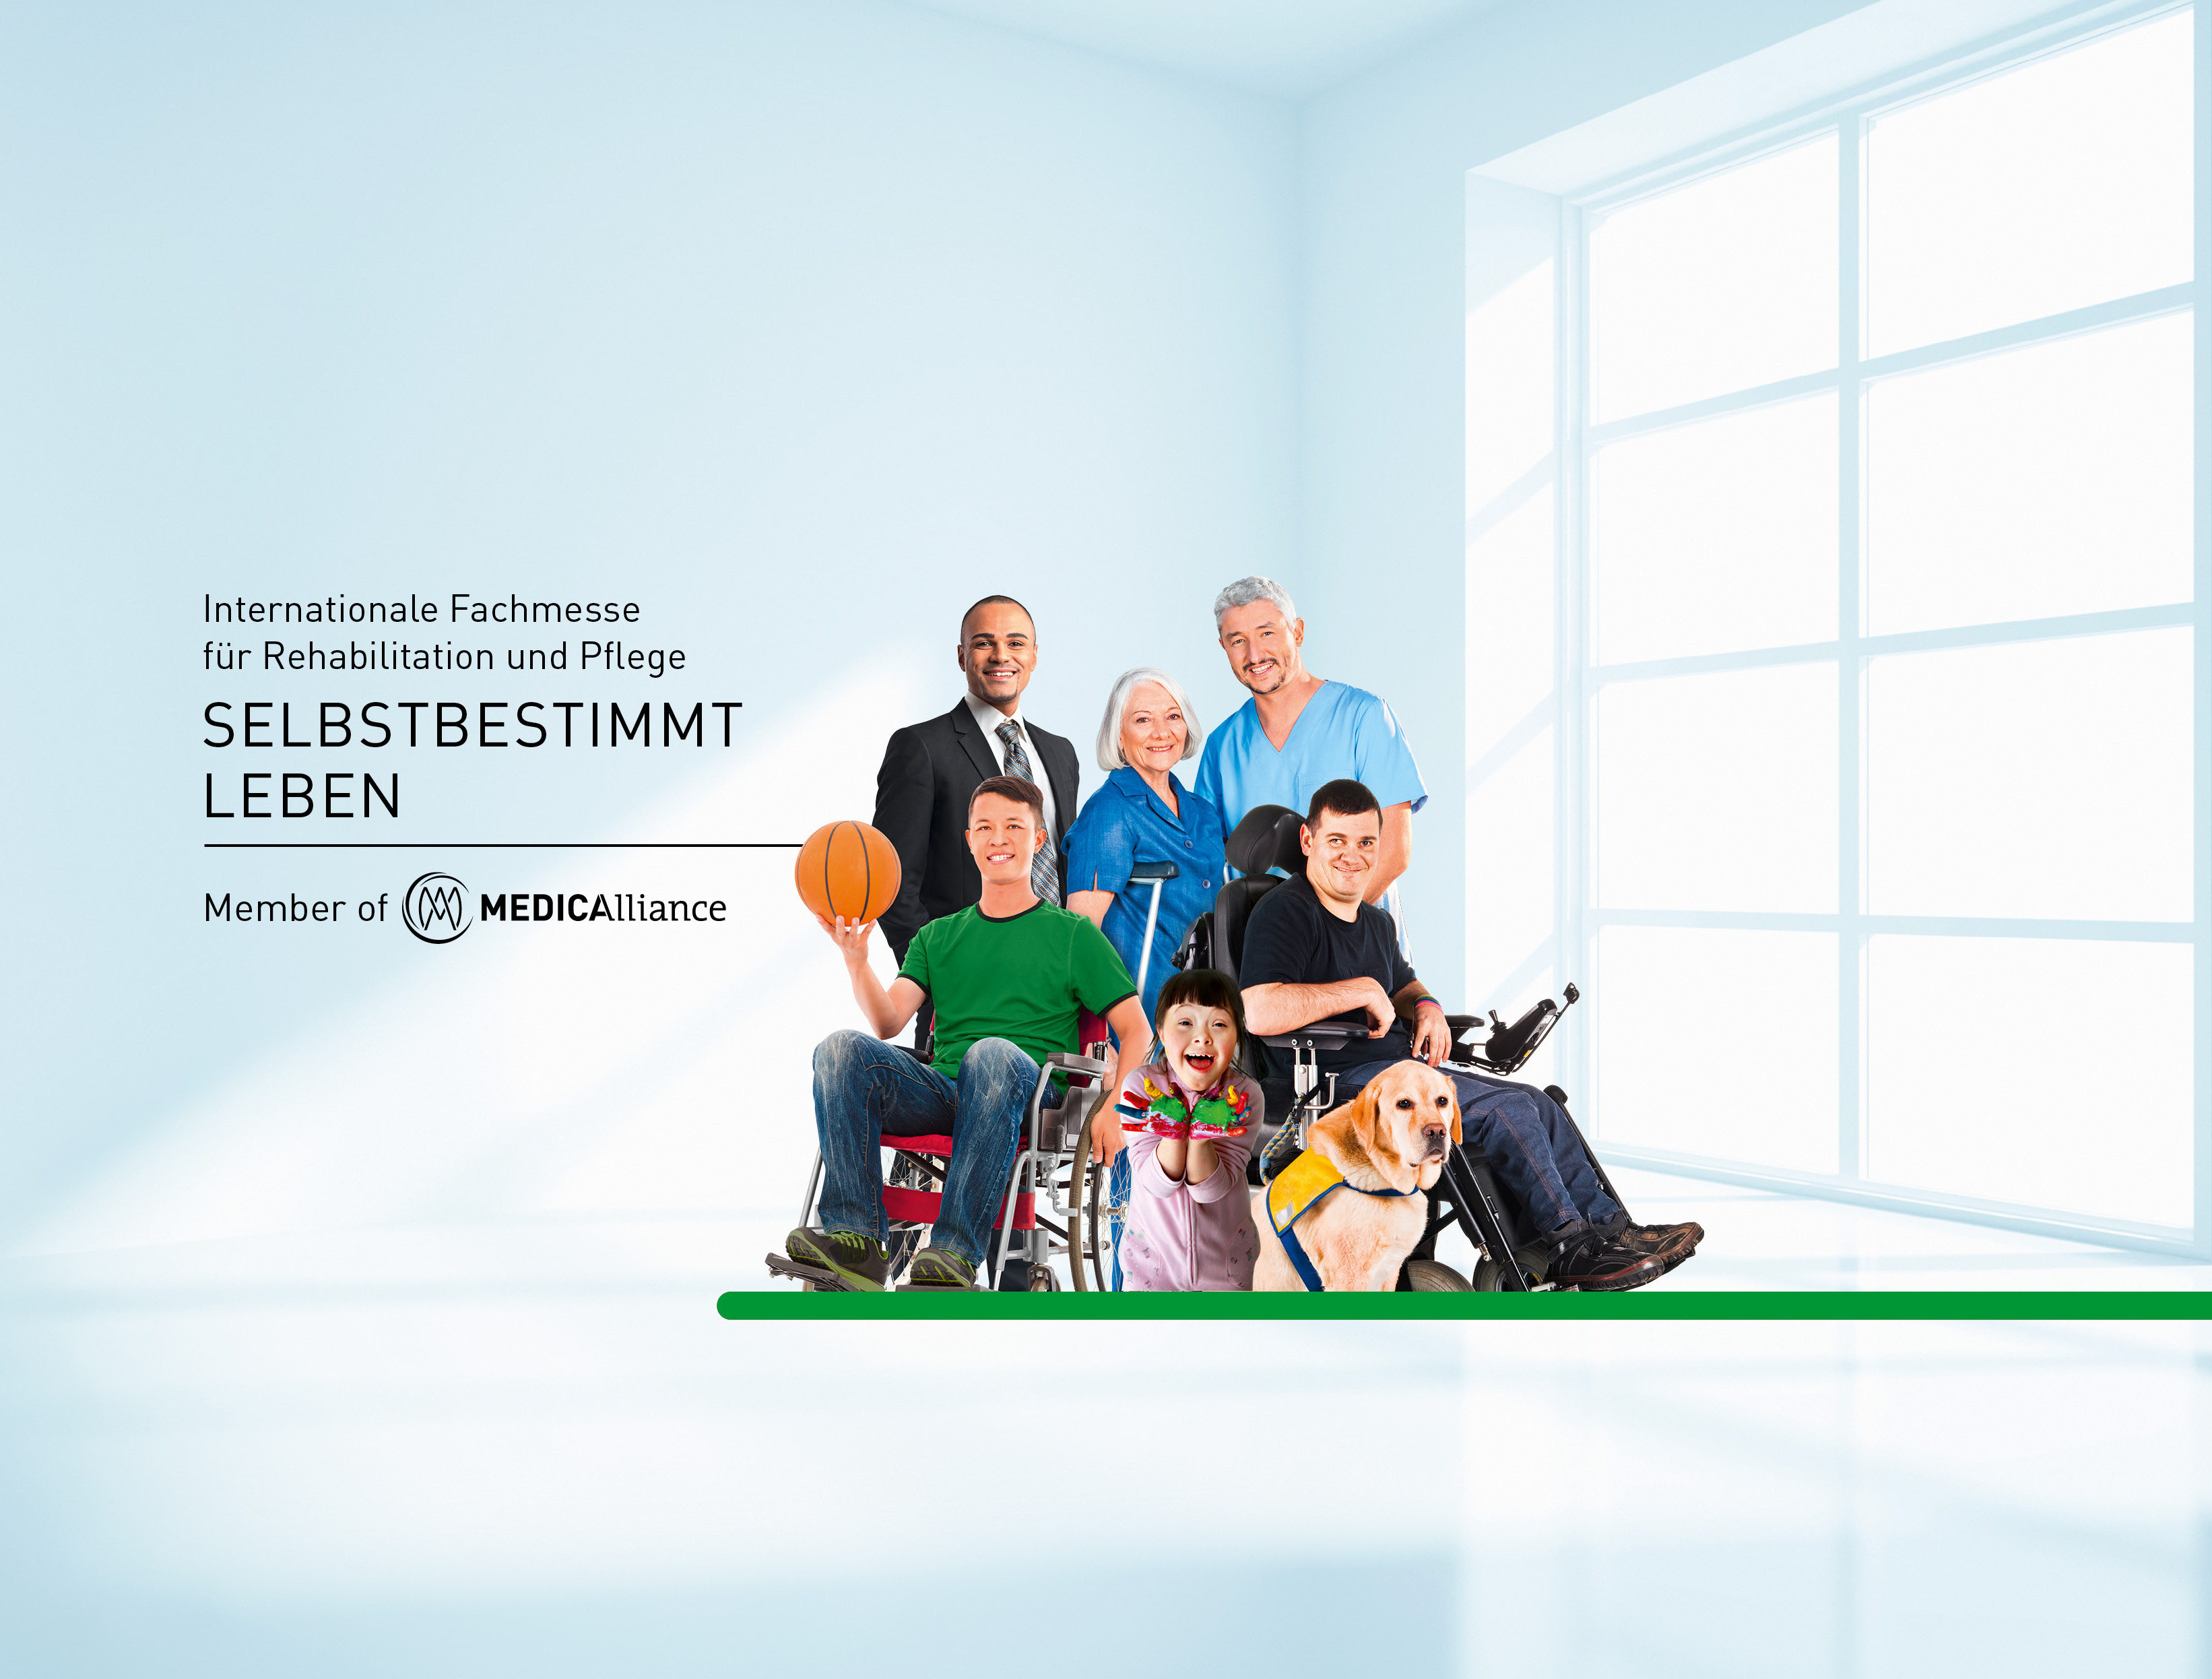 International Trade Fair For Rehabilitation And Care Of People With Special Needs And Those Requiring Care Rehabilitation Care Prevention Inclusion Living Aids Mobility Communication Traveling Sports Dusseldorf Rehacare